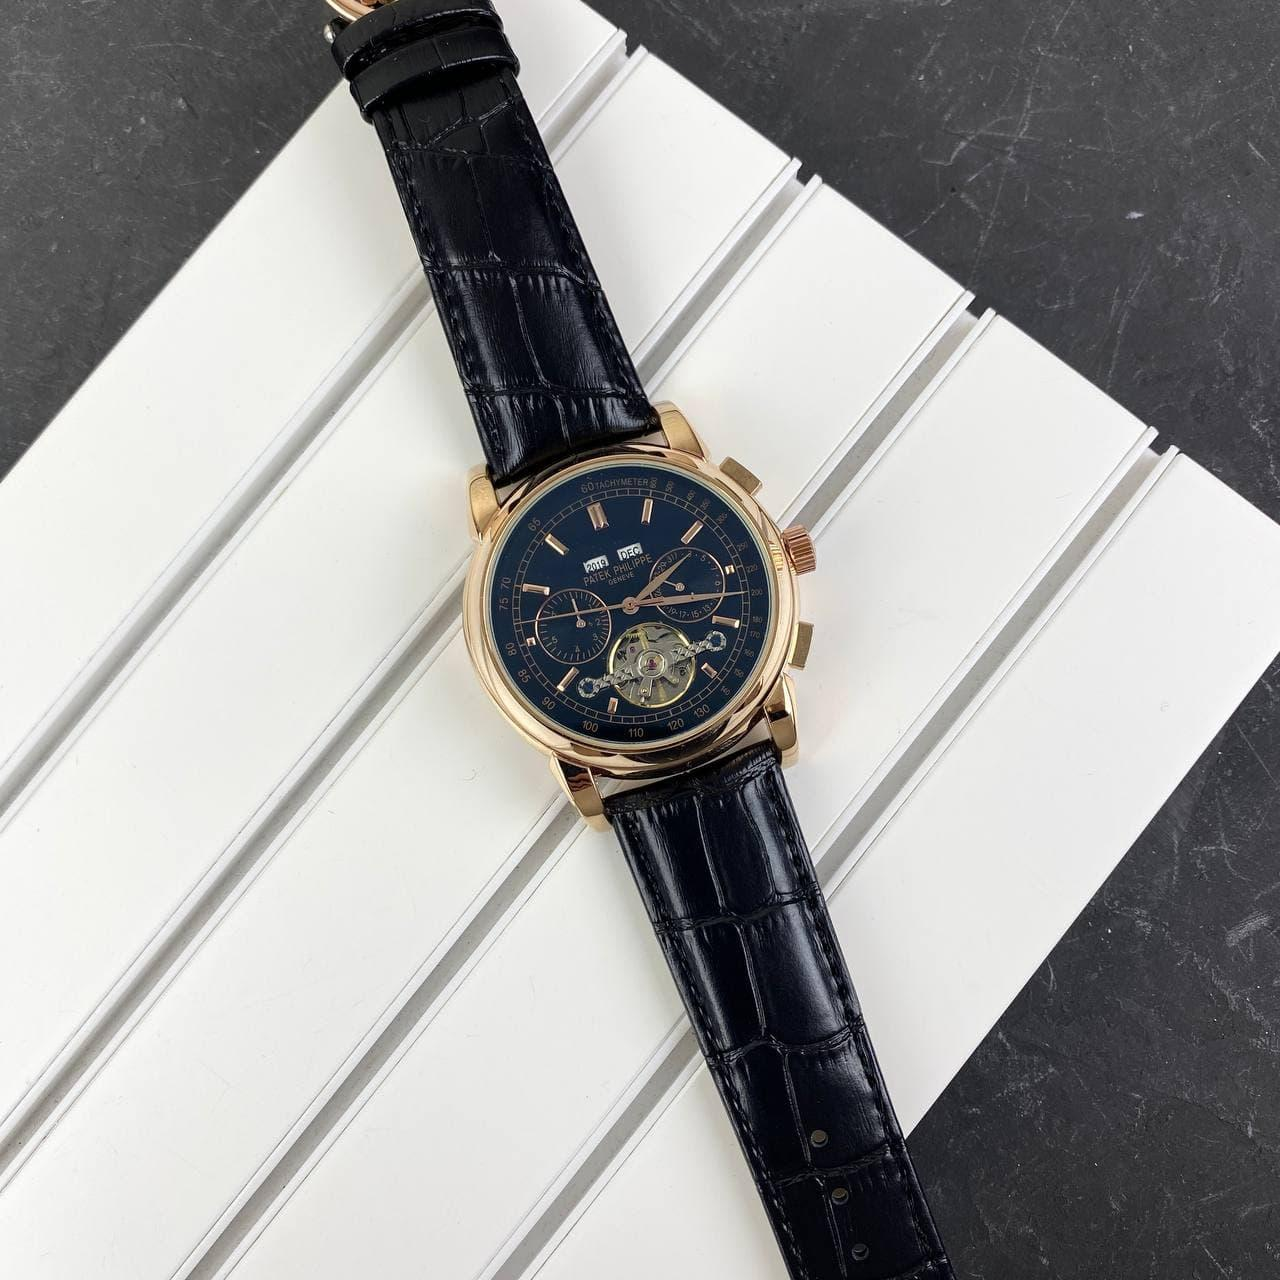 Мужские наручные часы Patek Philippe Grand Complications Tourbillon Gold-Black